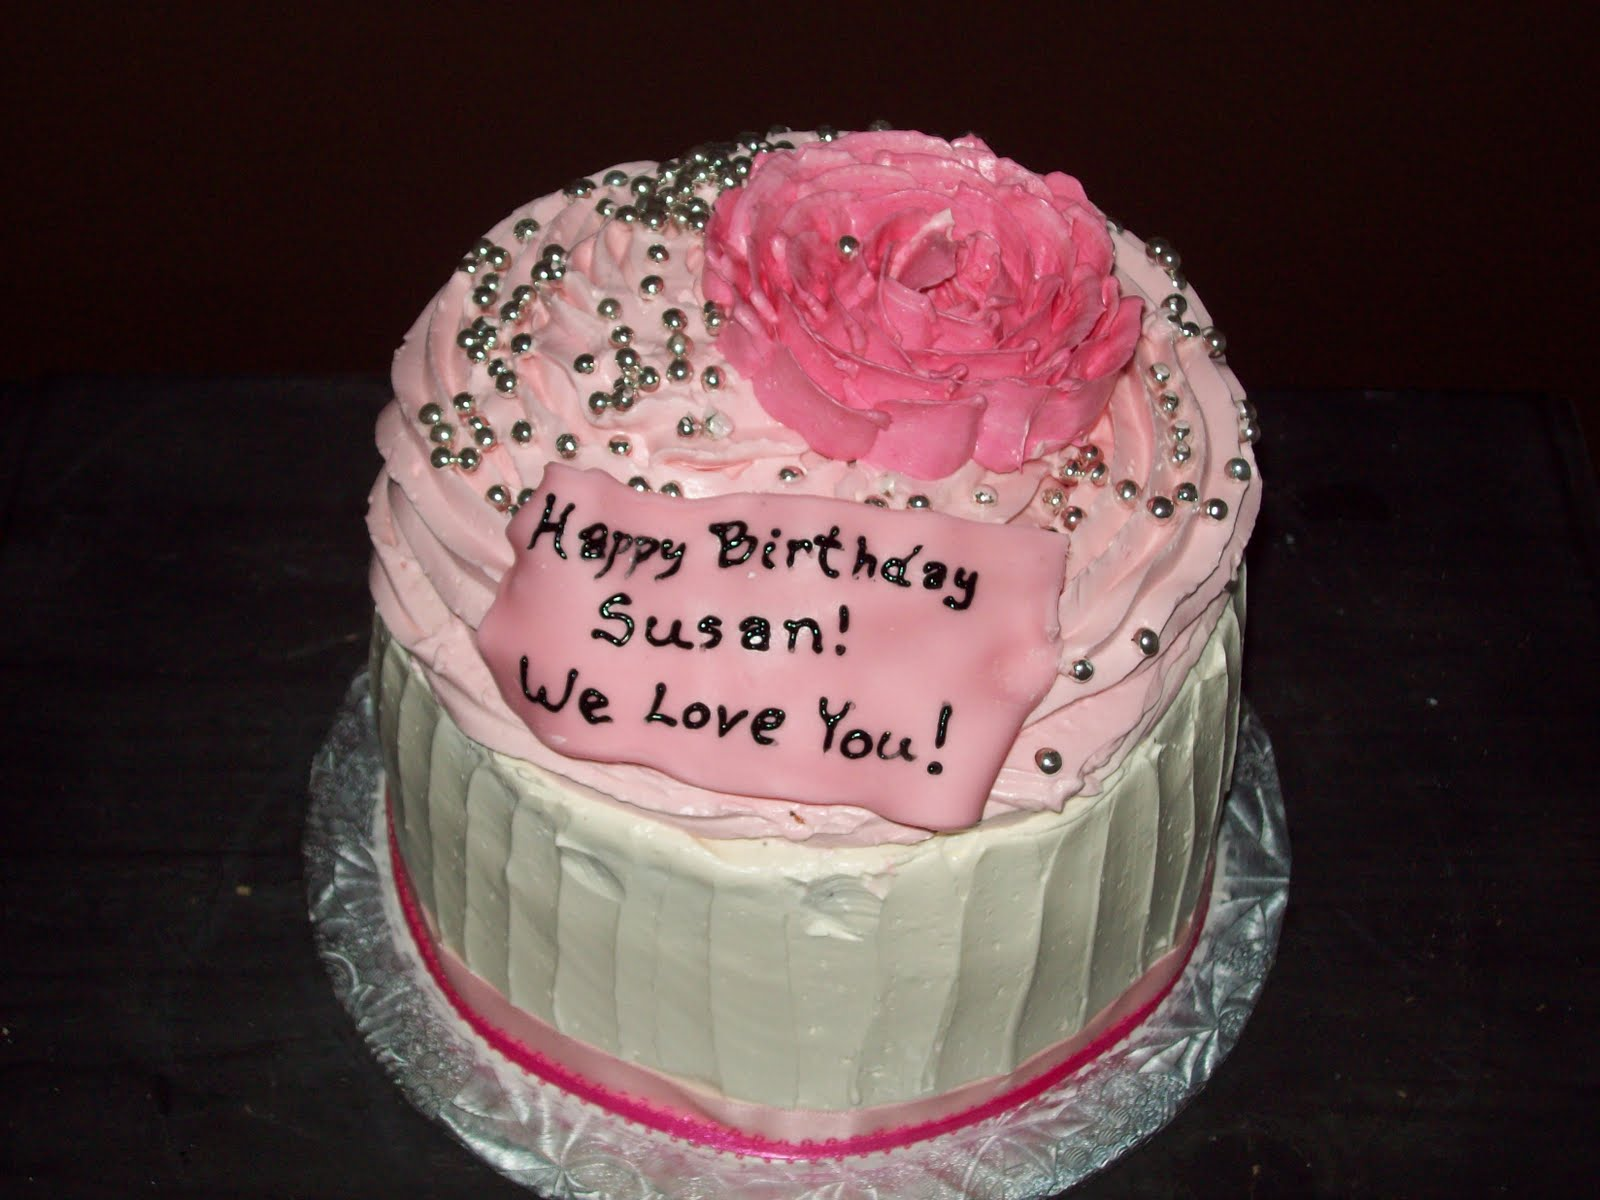 Birthday Cake Images Sue : Free Embroidery Designs, Cute Embroidery Designs